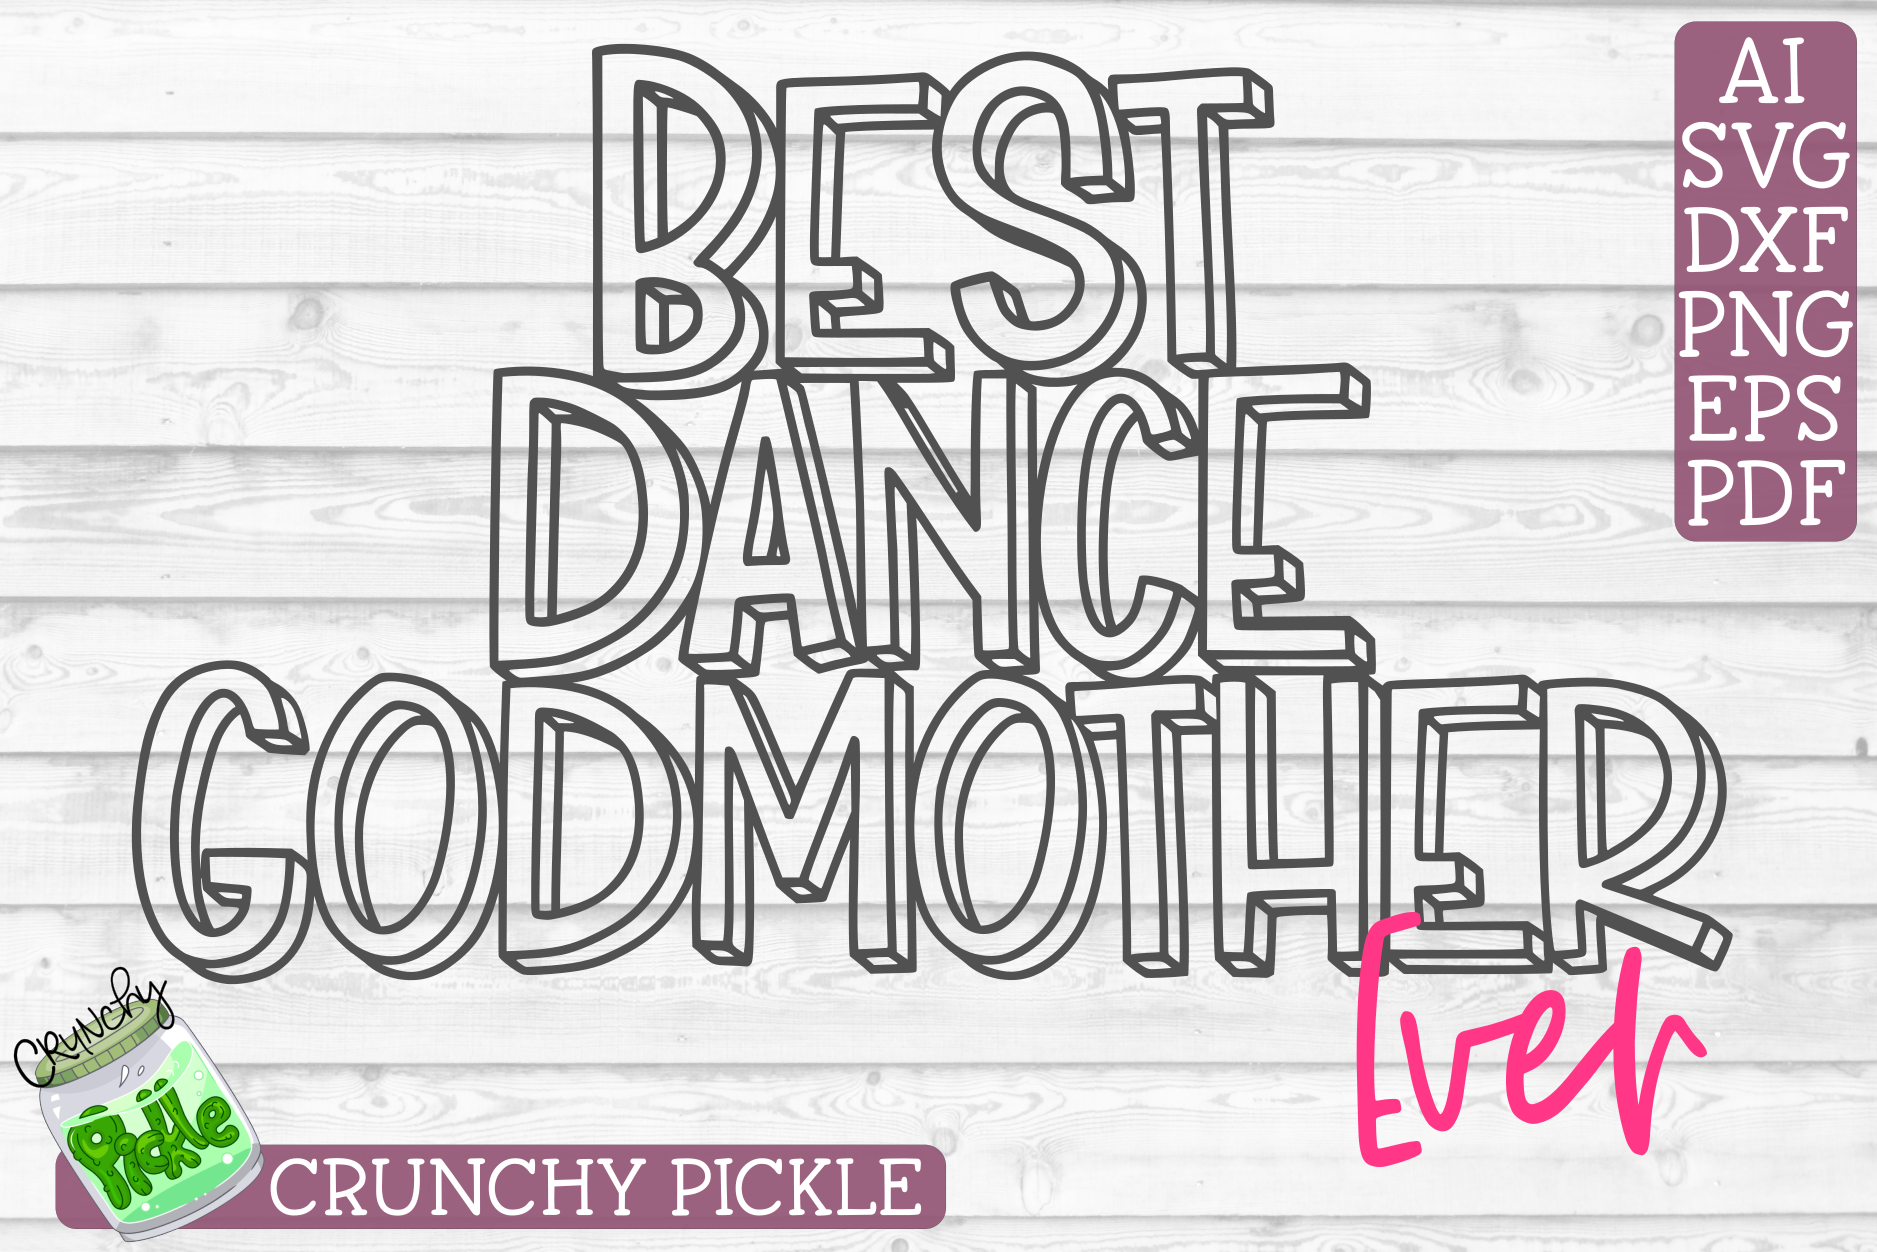 Best Dance Godmother Ever Sports SVG Cut File example image 2